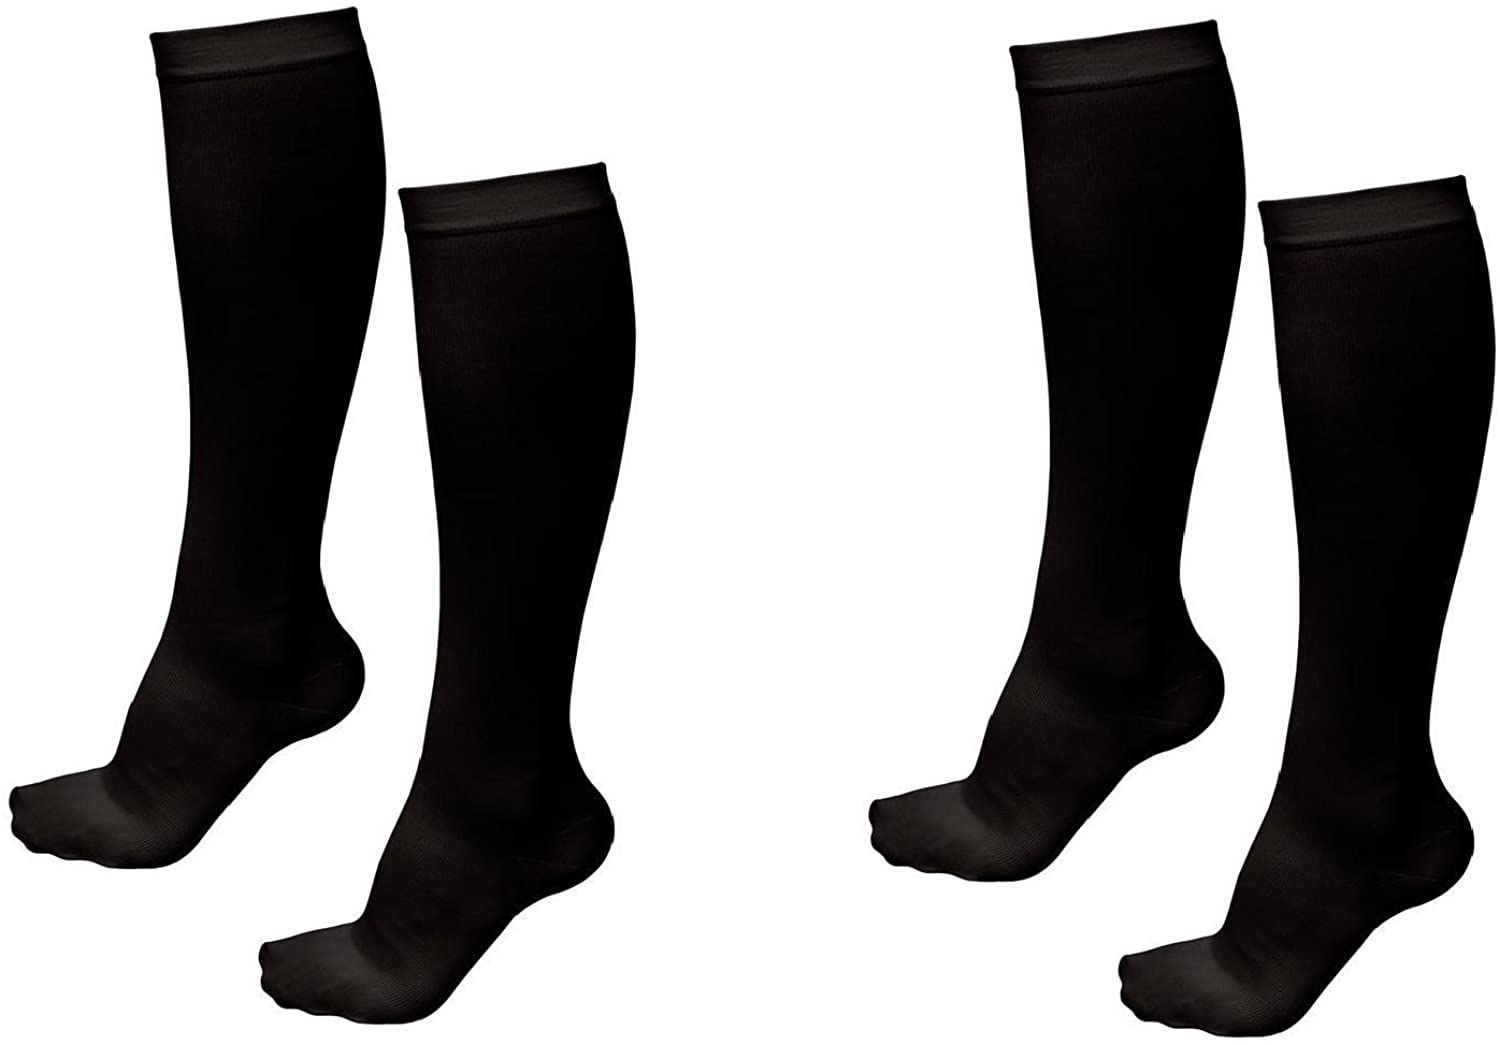 2 Pair Black Lg/Xl - TASOM Compression Socks Over the Calf Below Knee Anti Fatigue Sock For Mens Womans Foot Feet Ankle Heel Pain Ache Swelling Relief Support Stockings